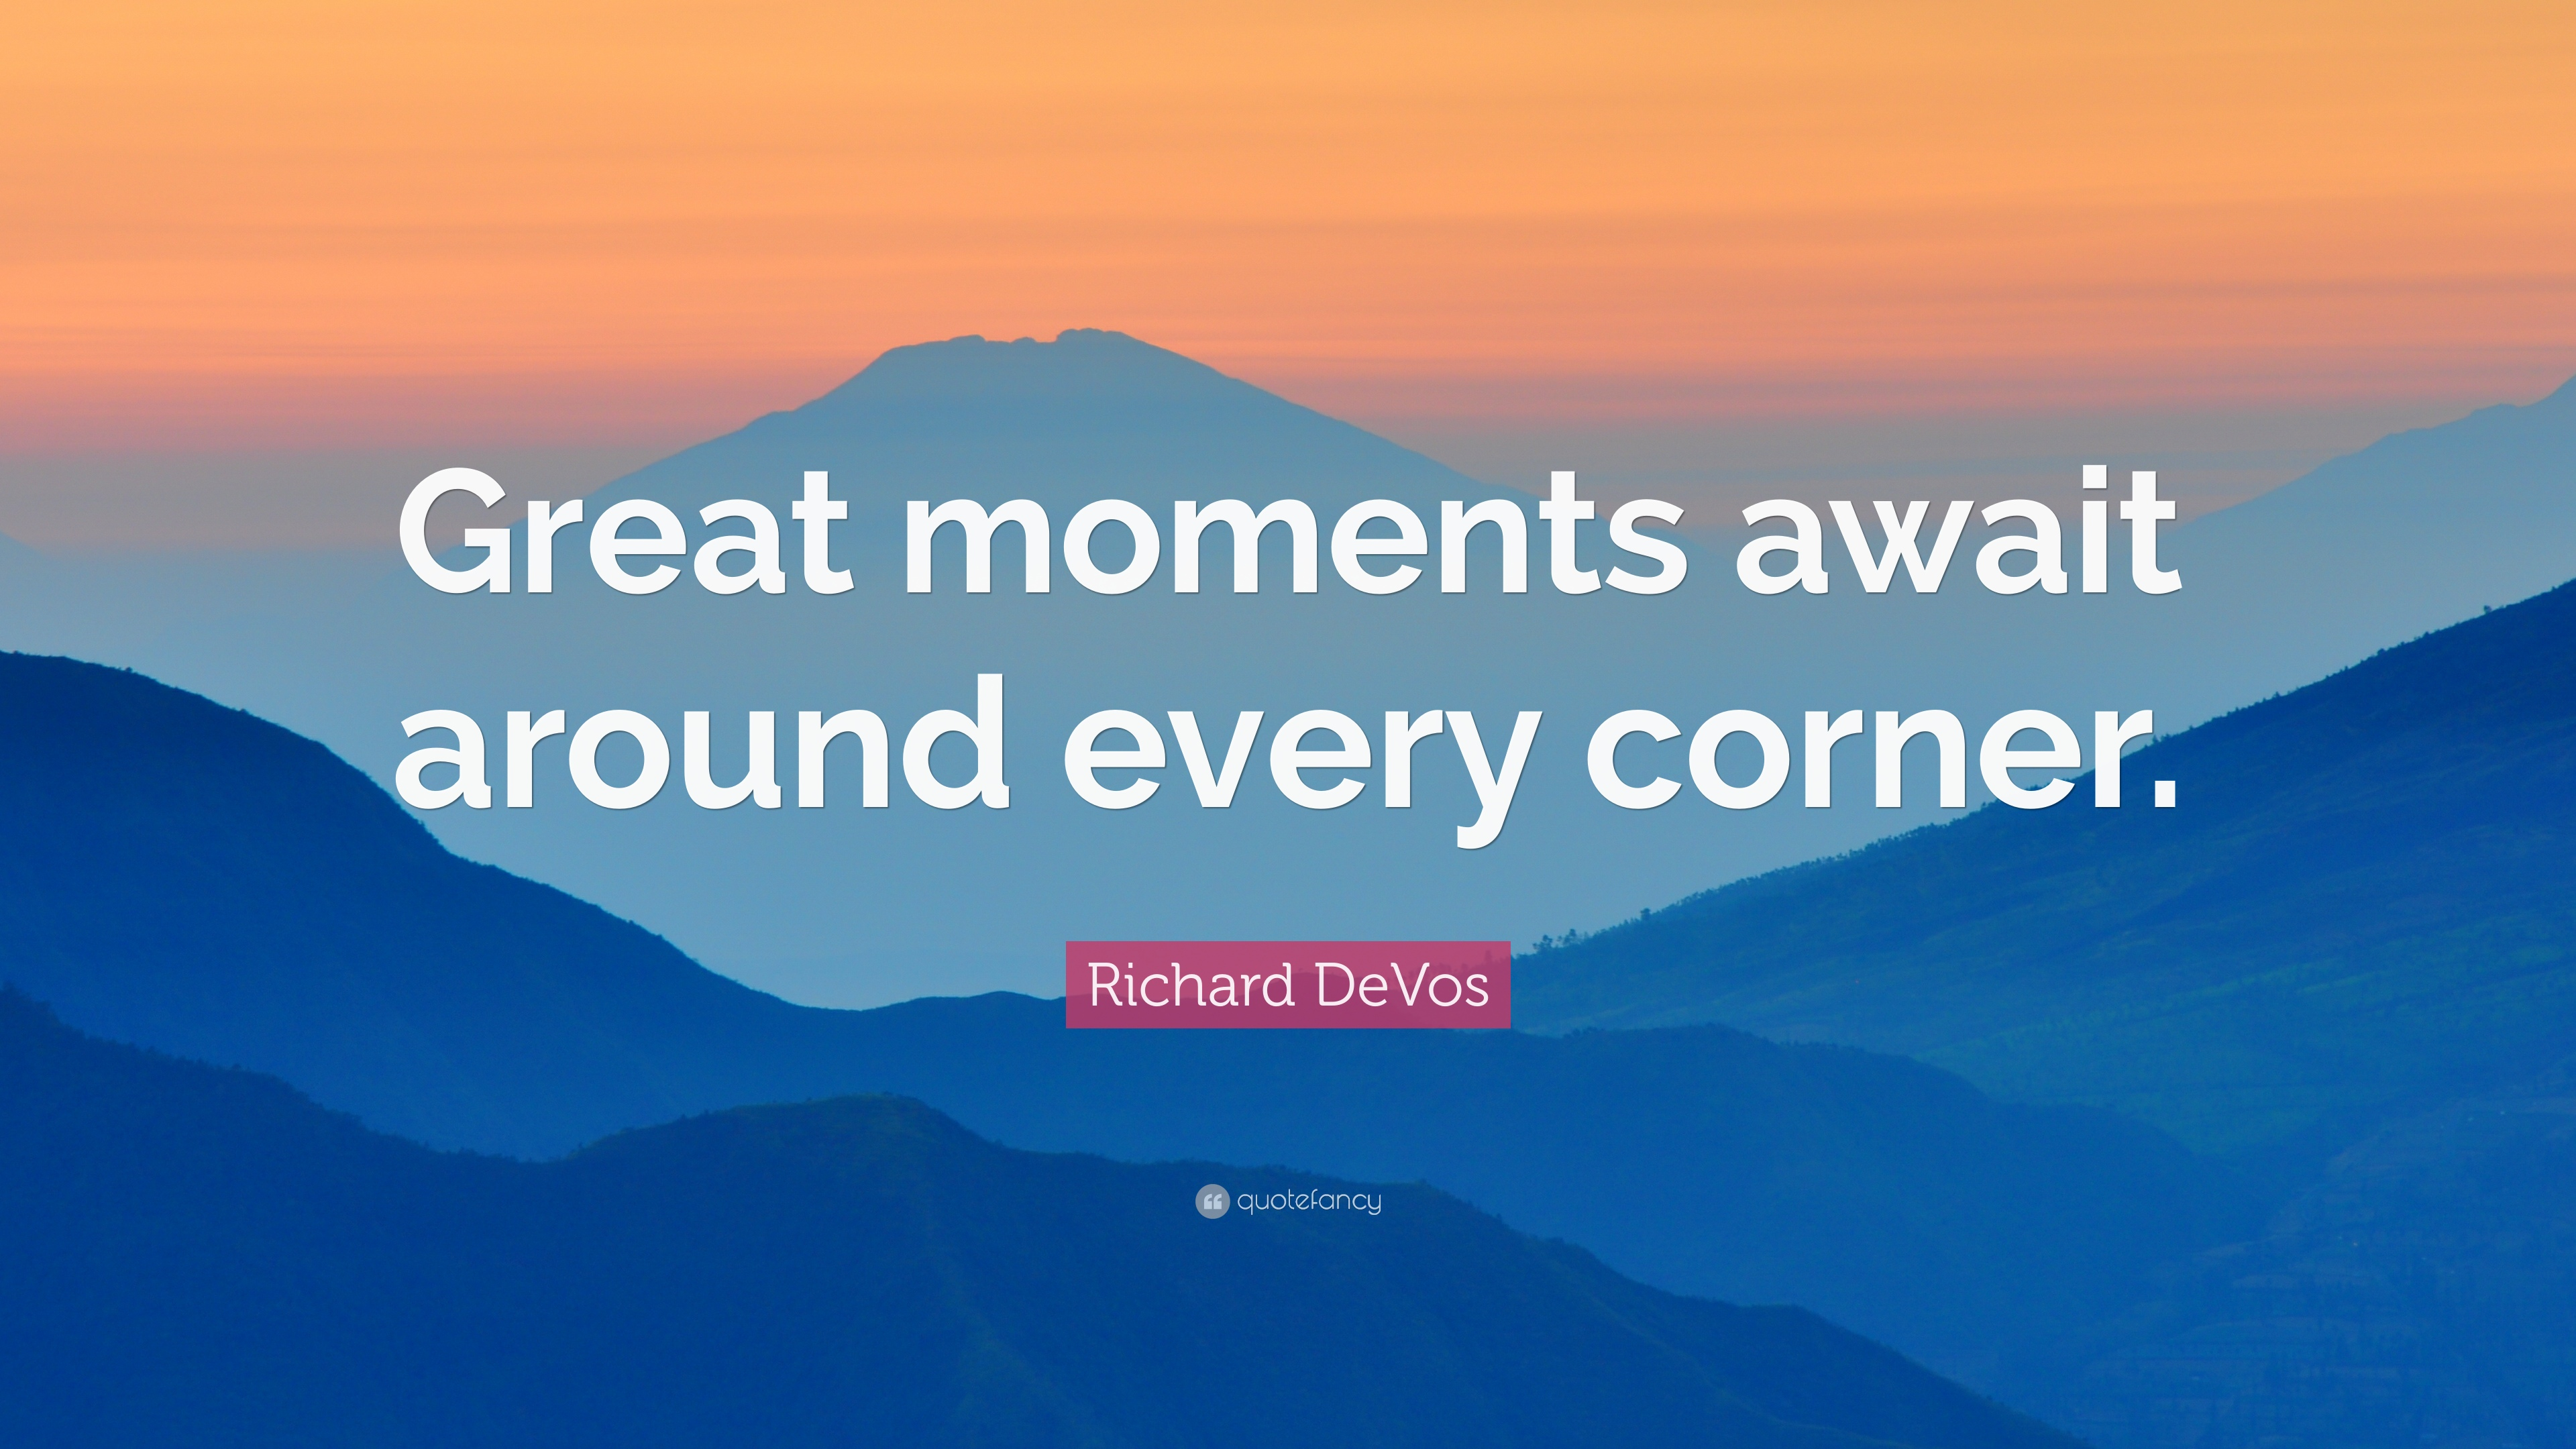 Richard DeVos Quote: U201cGreat Moments Await Around Every Corner.u201d